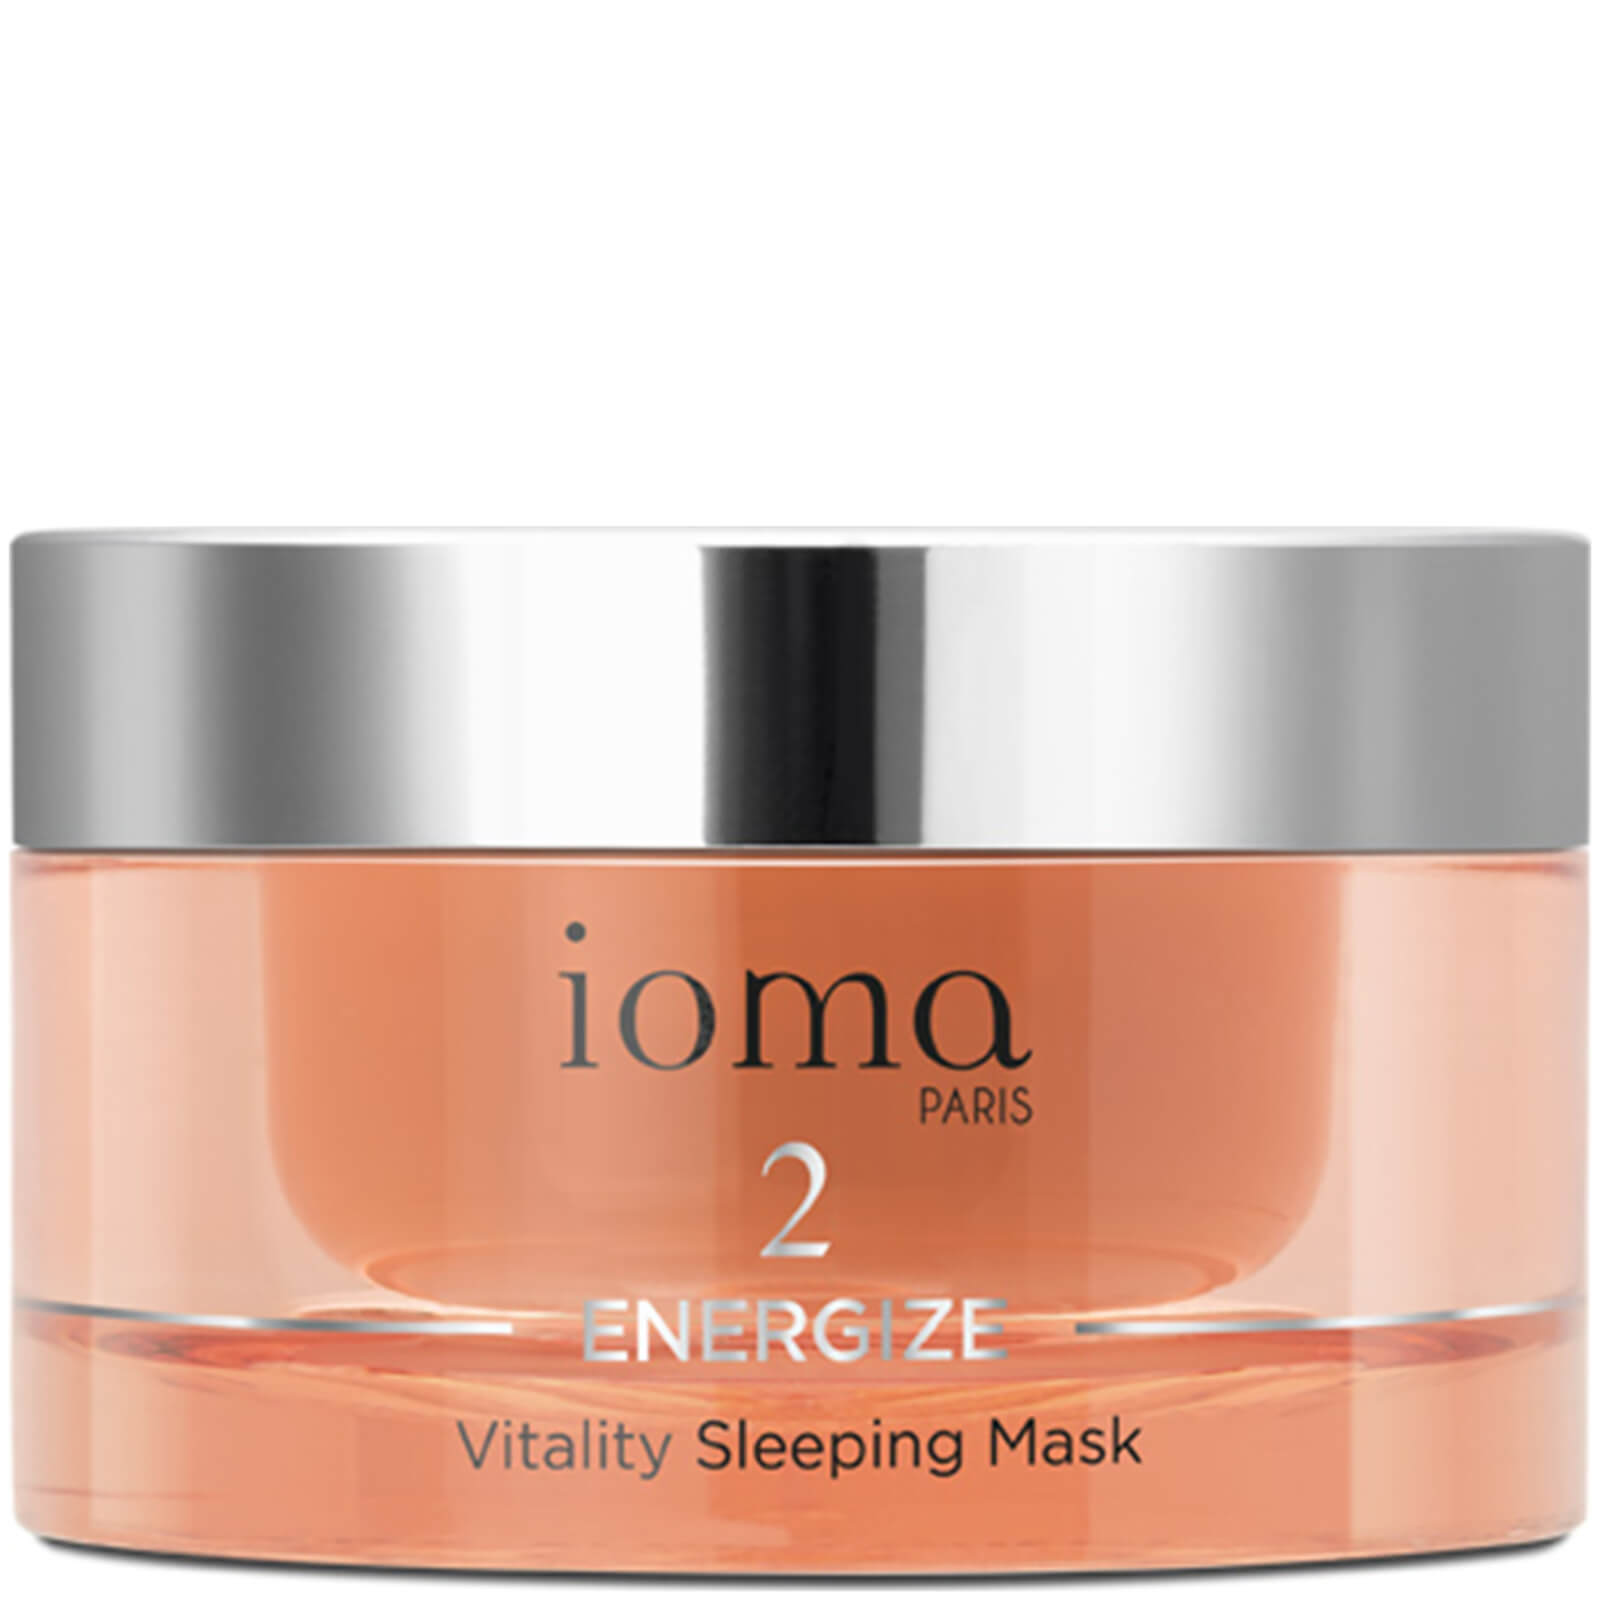 IOMA Vitality Sleeping Mask 50ml